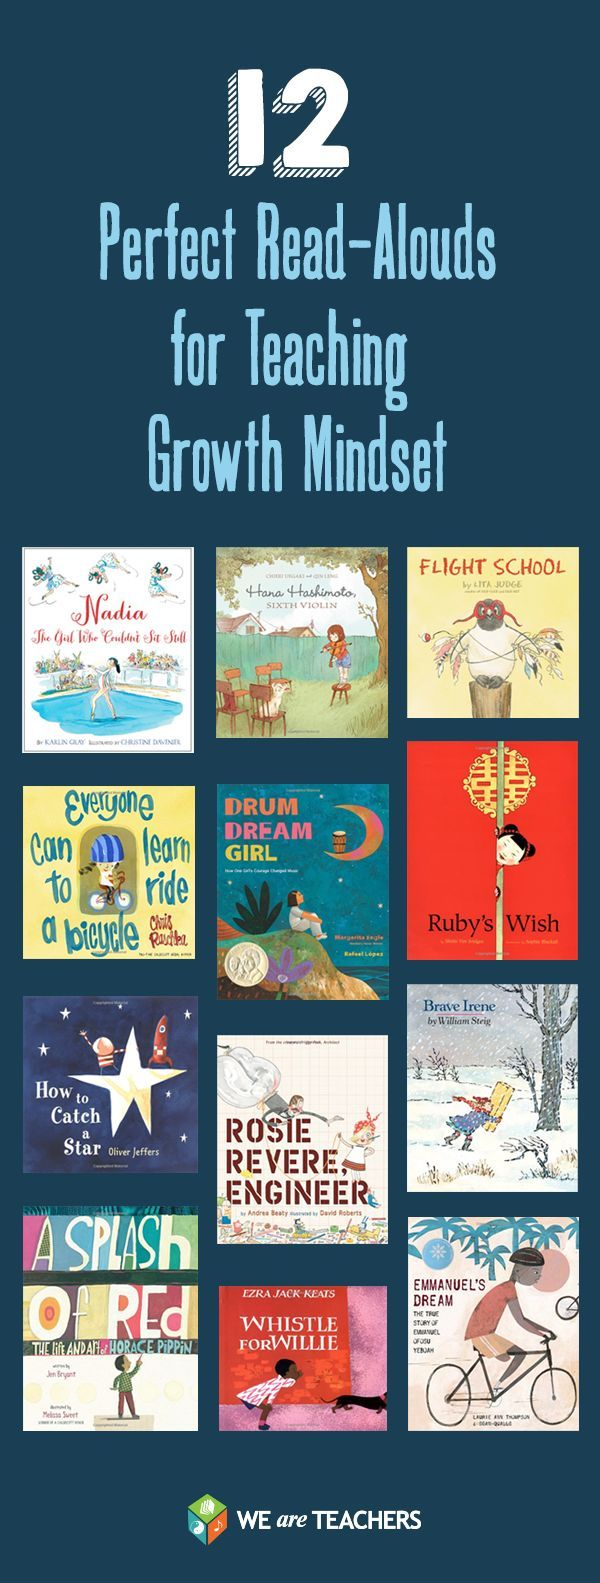 12 Perfect Read-Alouds for Teaching Growth Mindset | Follow @gwylio0148 or visit http://gwyl.io/ for more diy/kids/pets videos